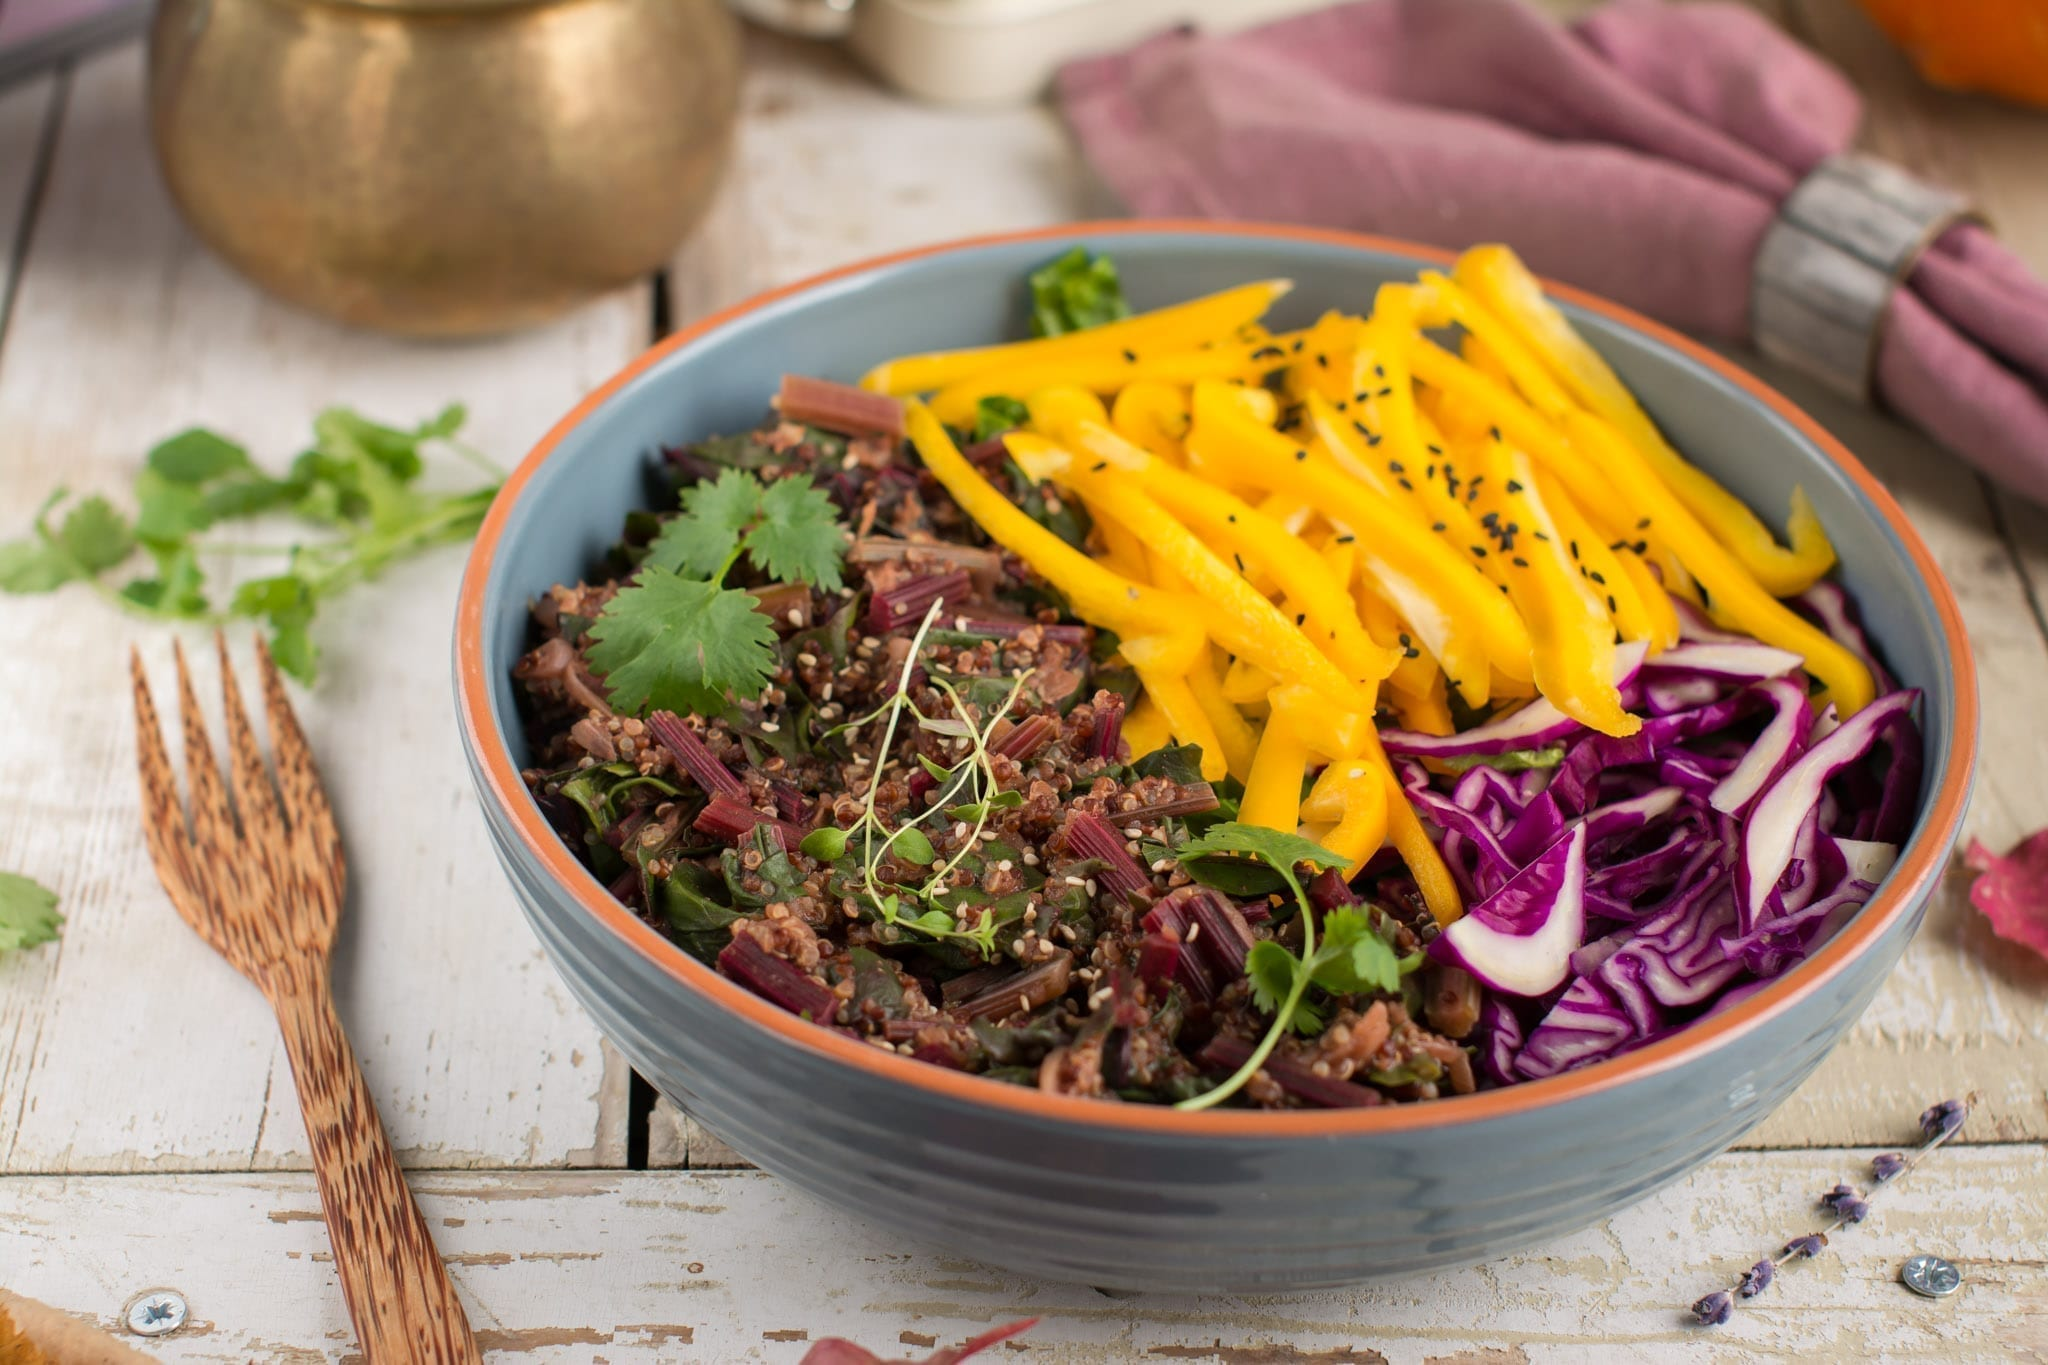 Candida cleanse meal plan Quinoa with onion, nutmeg, cinnamon and miso